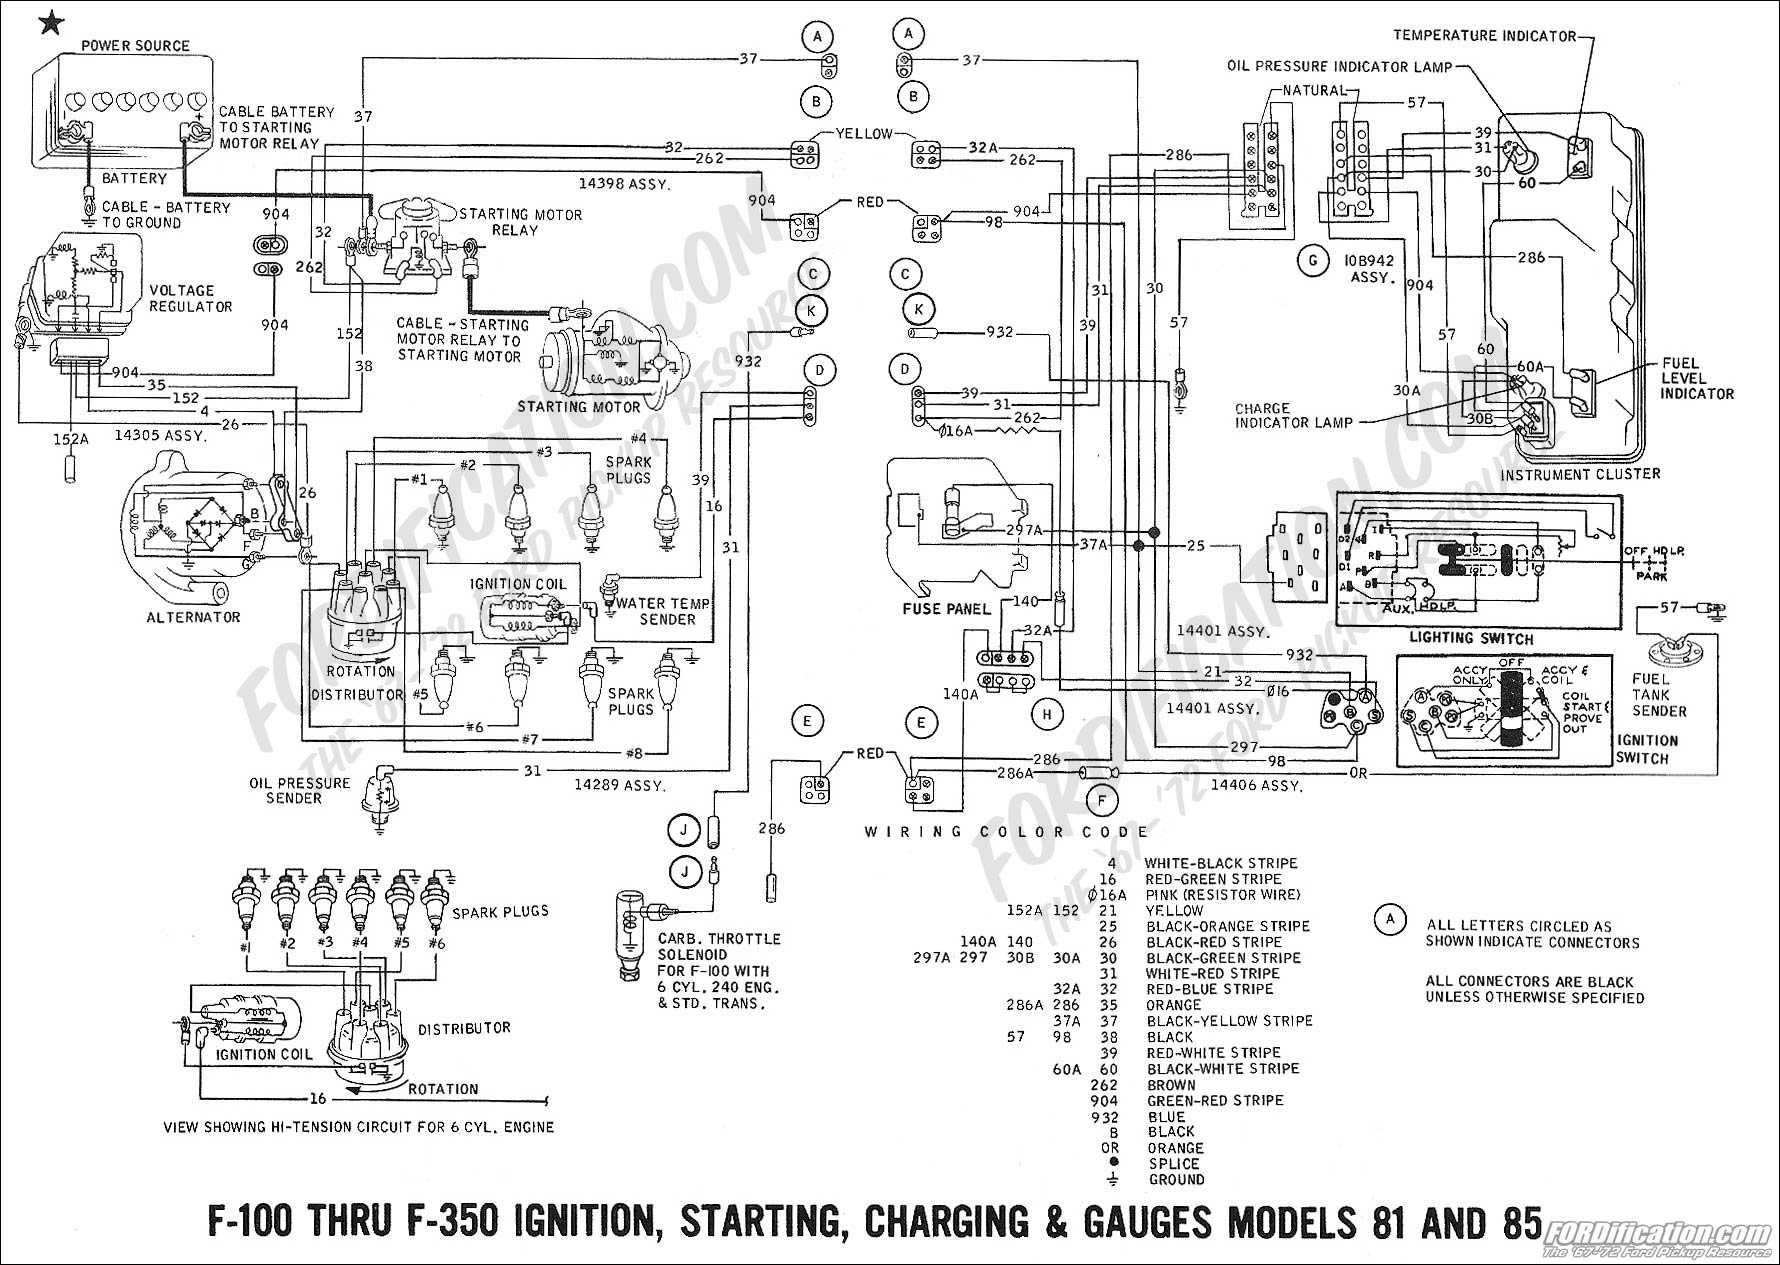 1986 Ford Truck Wiring F250 Manual Guide Diagram F350 Diesel 1987 Library Rh 12 Kaufmed De F 250 1988 F100